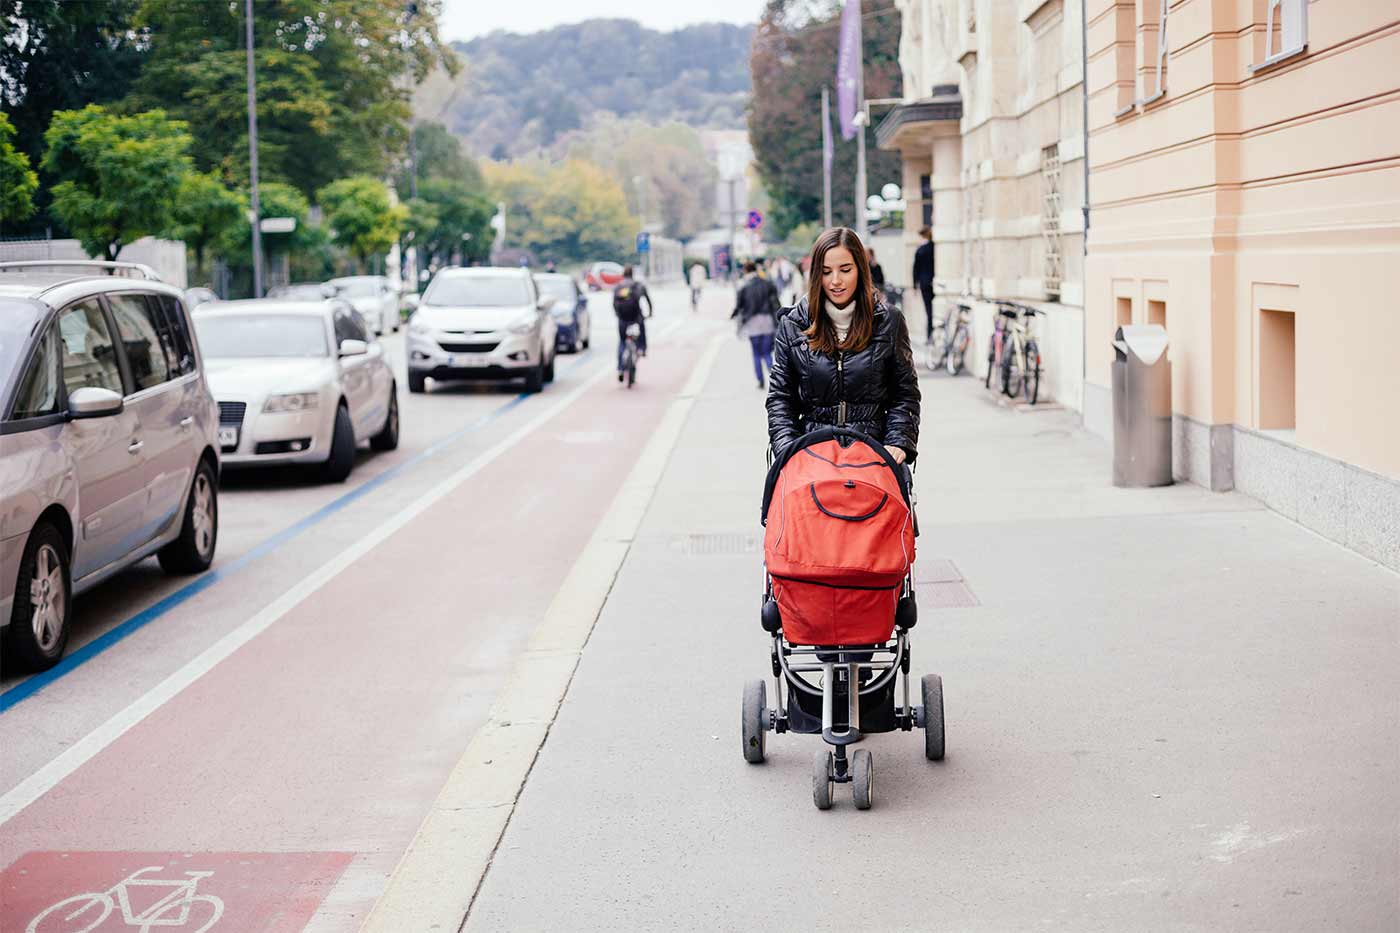 Mom pushing a stroller on a sidewalk